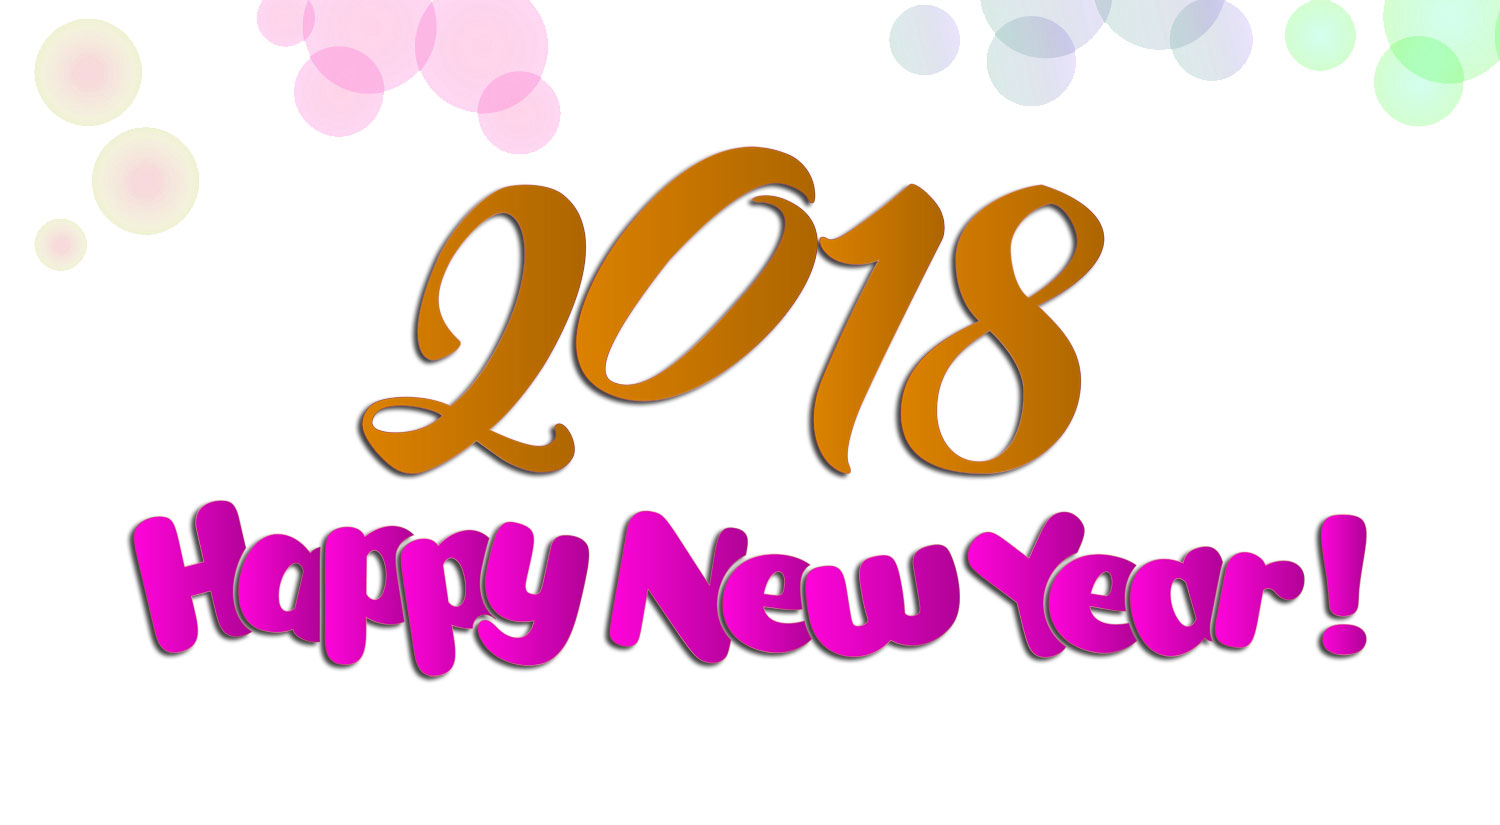 happy-new-year-2018-free-download-wallpapers.jpg